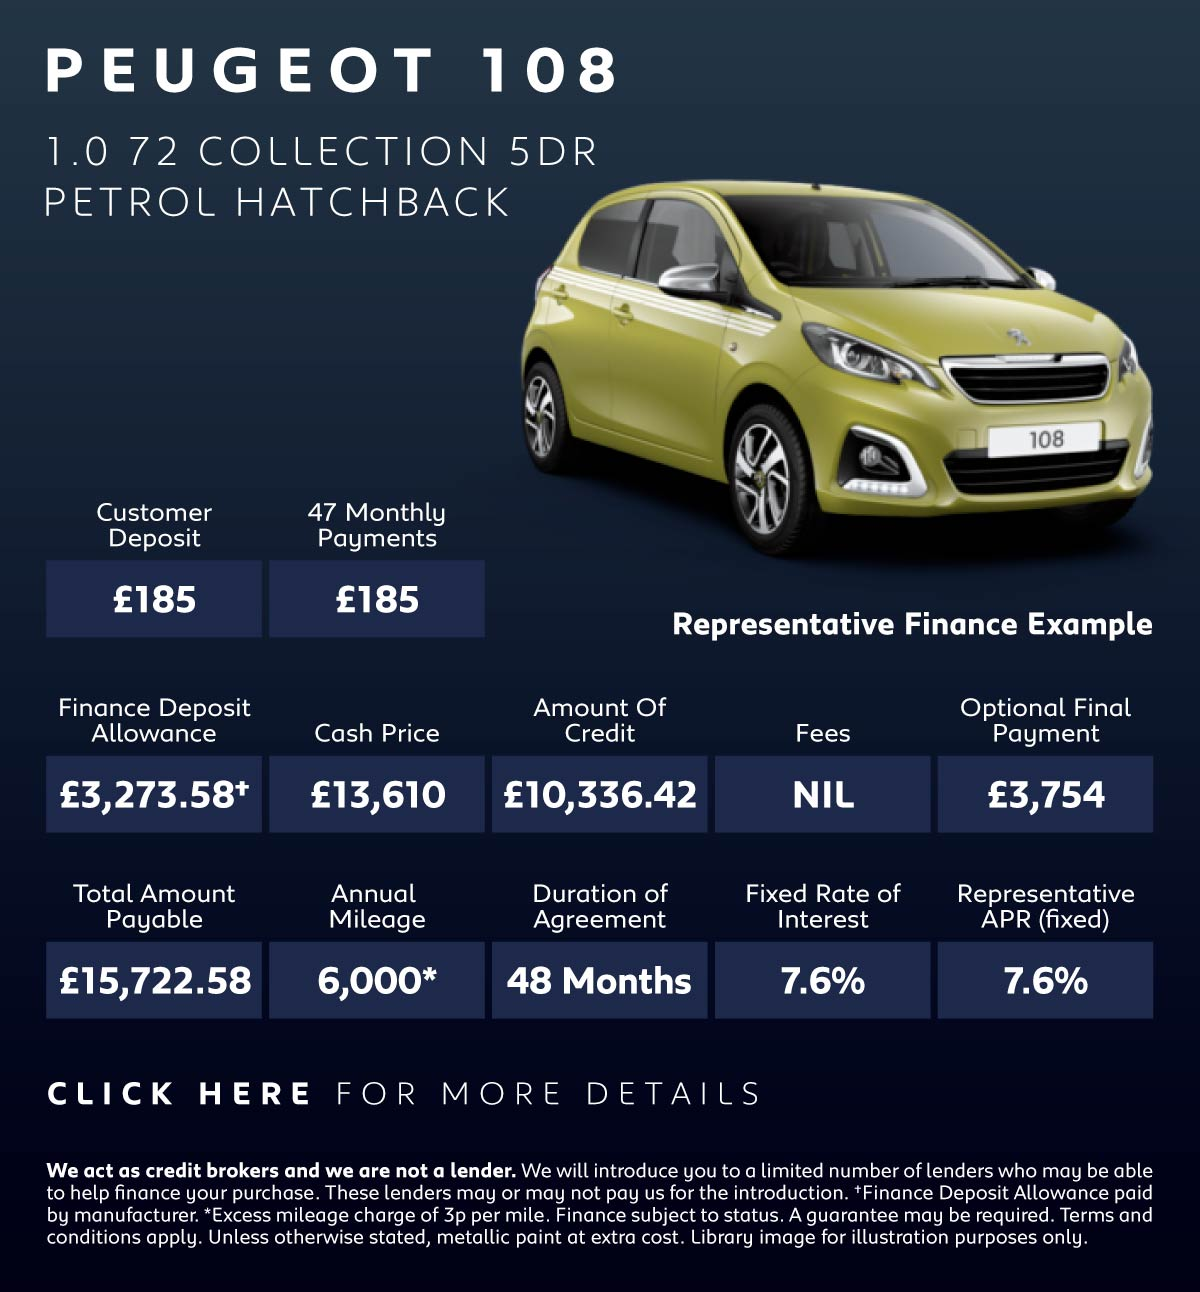 [Peugeot 108] Peugeot 108 Collection 150719 Banner 2